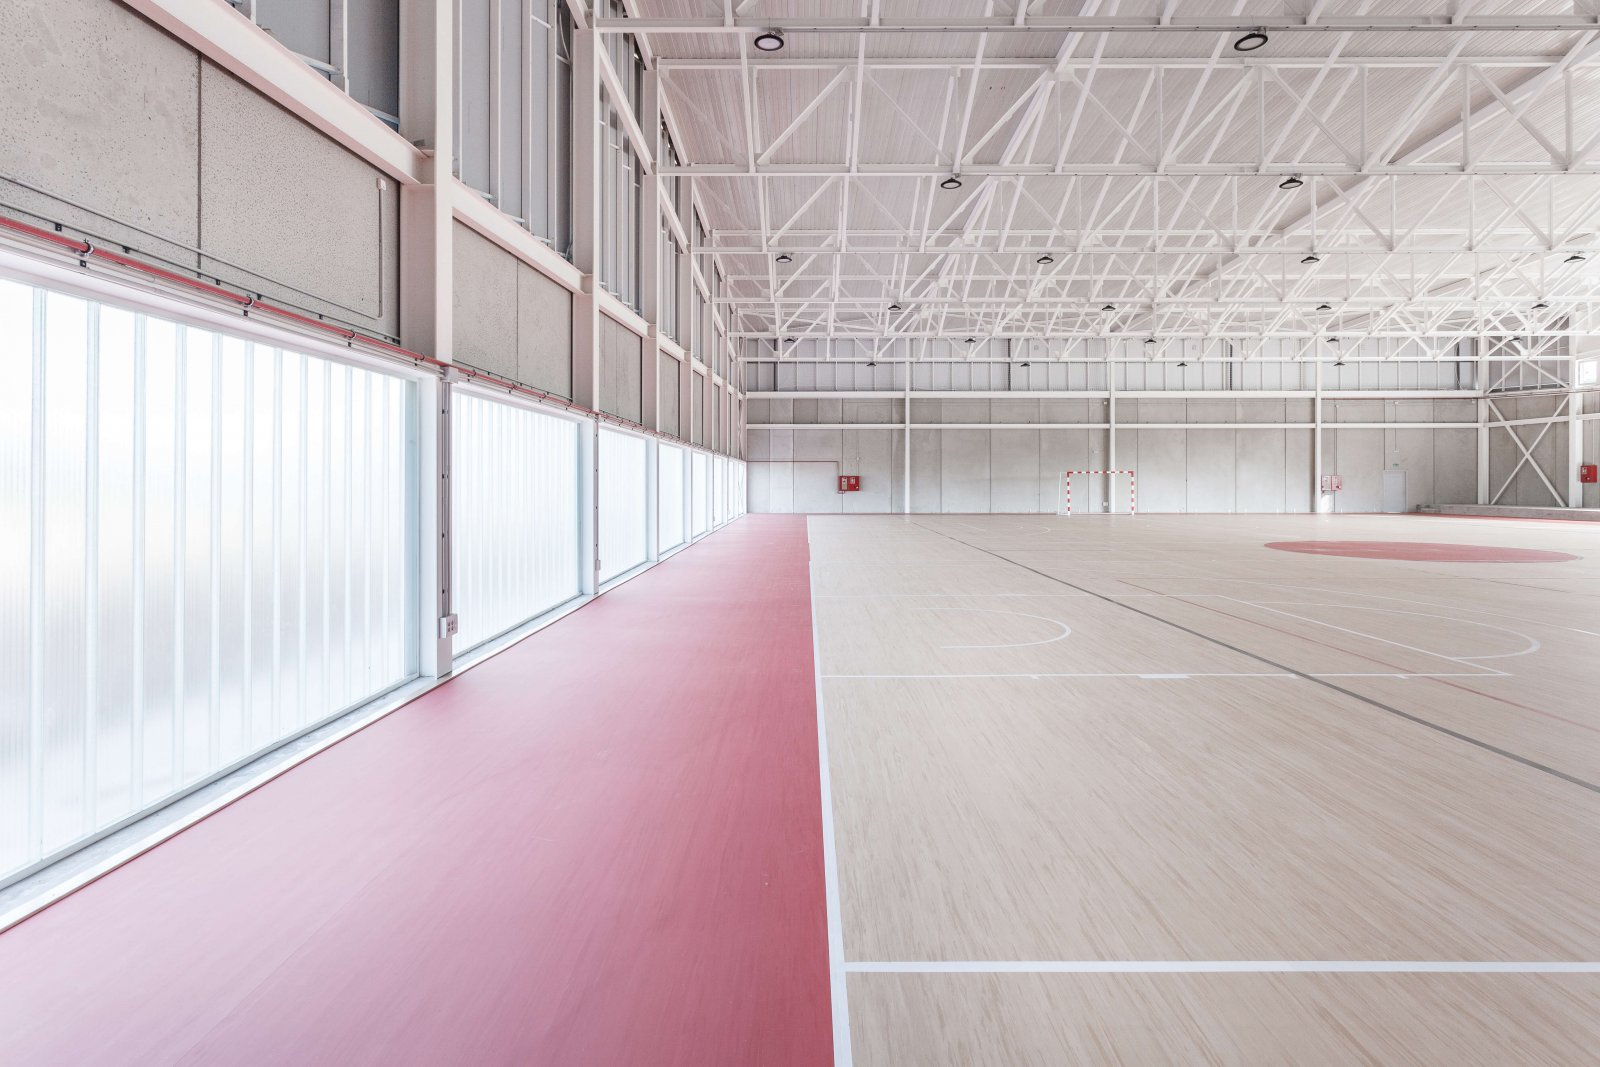 Another view of the sports court focusing on the opaque windows and the area that limits the court